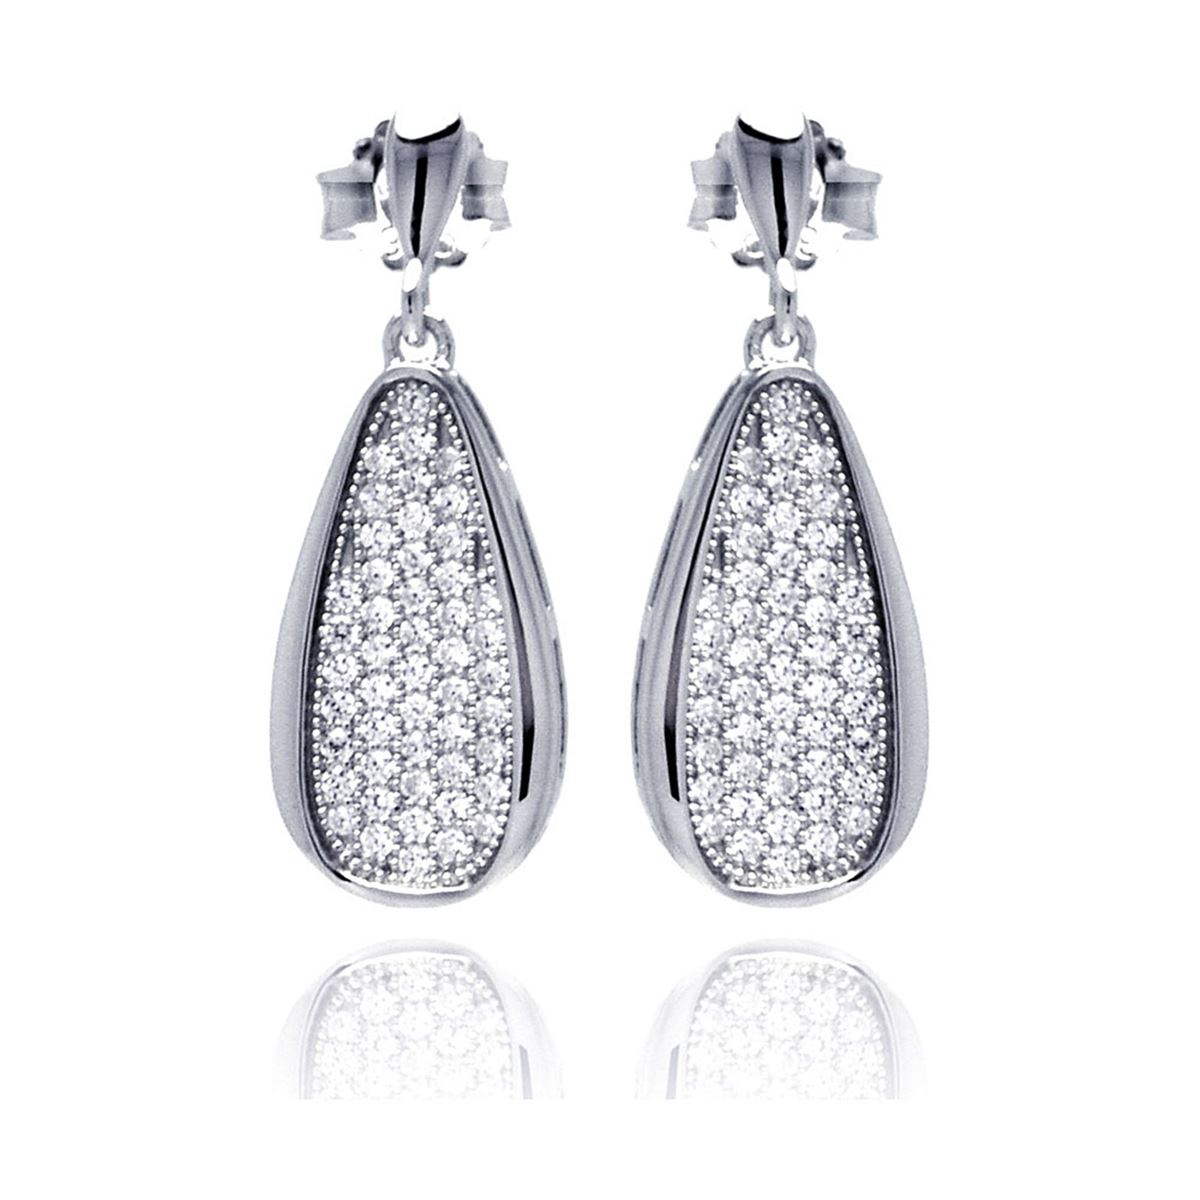 9f2b0a421 Loading zoom · Image 1 : Sterling Silver Rhodium Plated Micro Pave Clear  Teardrop CZ Dangling Stud Earring ace00057